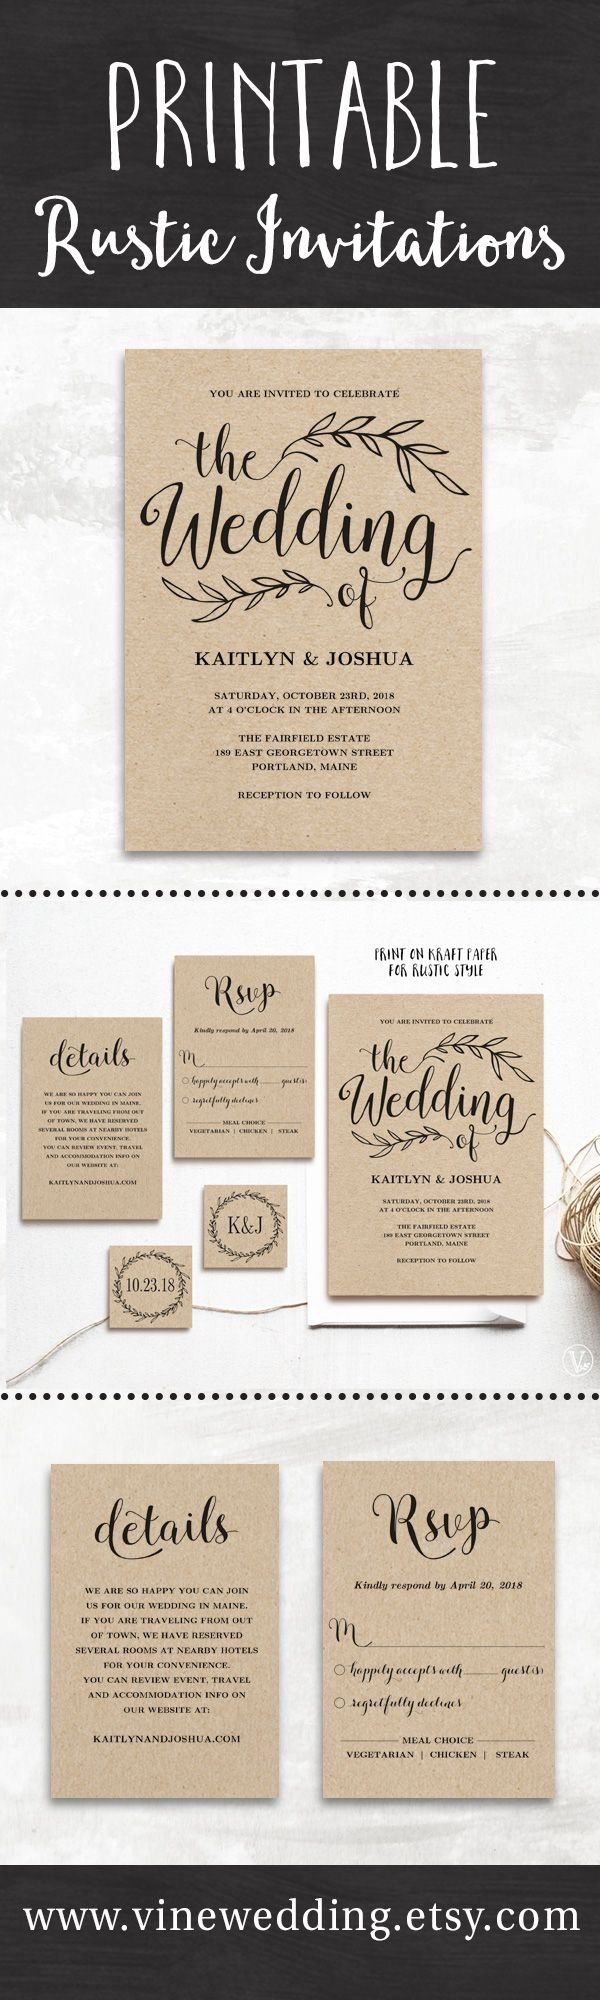 invitation letter for us vissample wedding%0A Beautiful rustic wedding invitations  Editable instant download templates  you can print as many as you